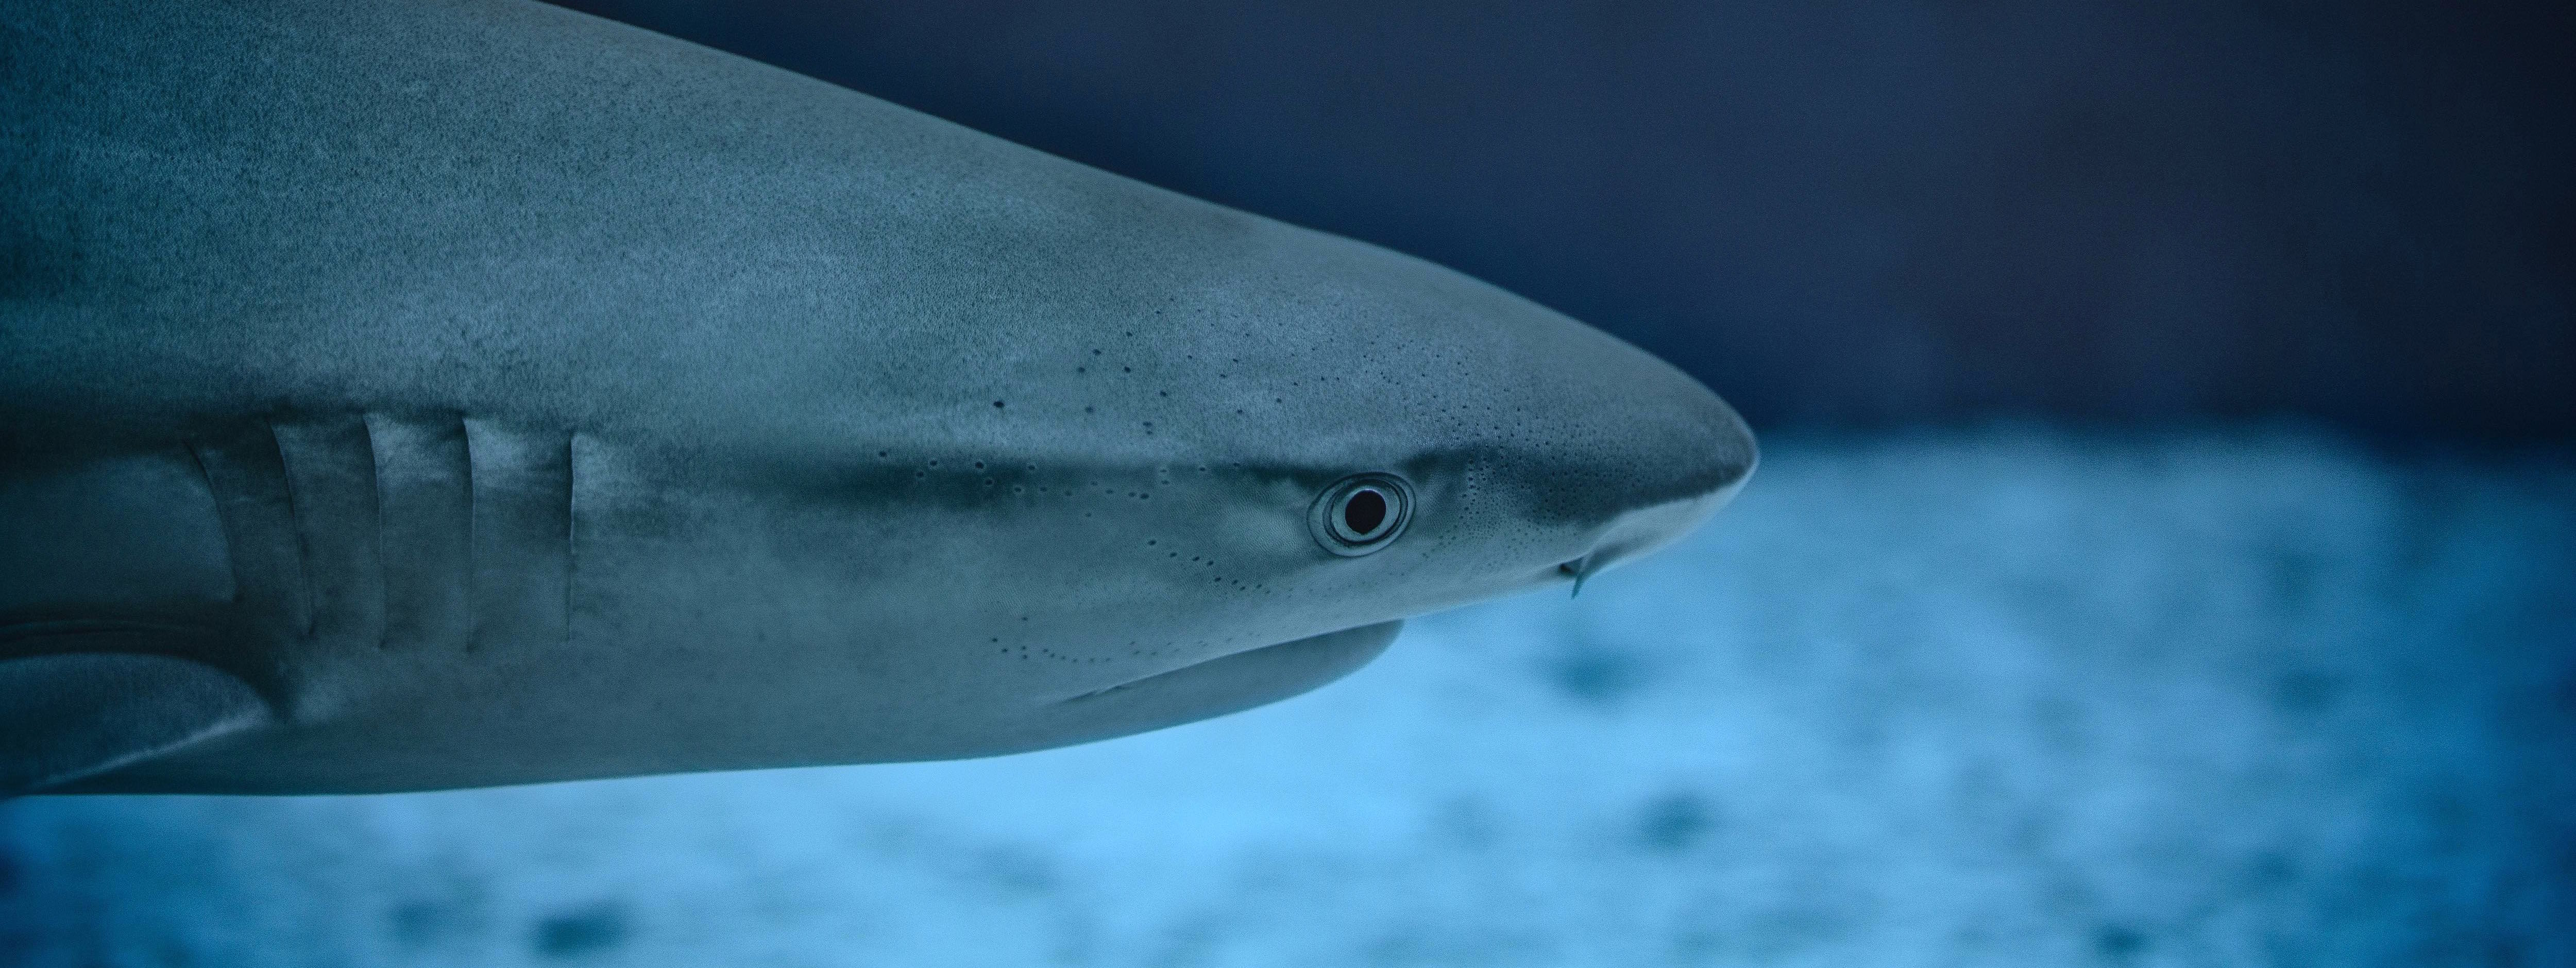 Take action on lethal shark control